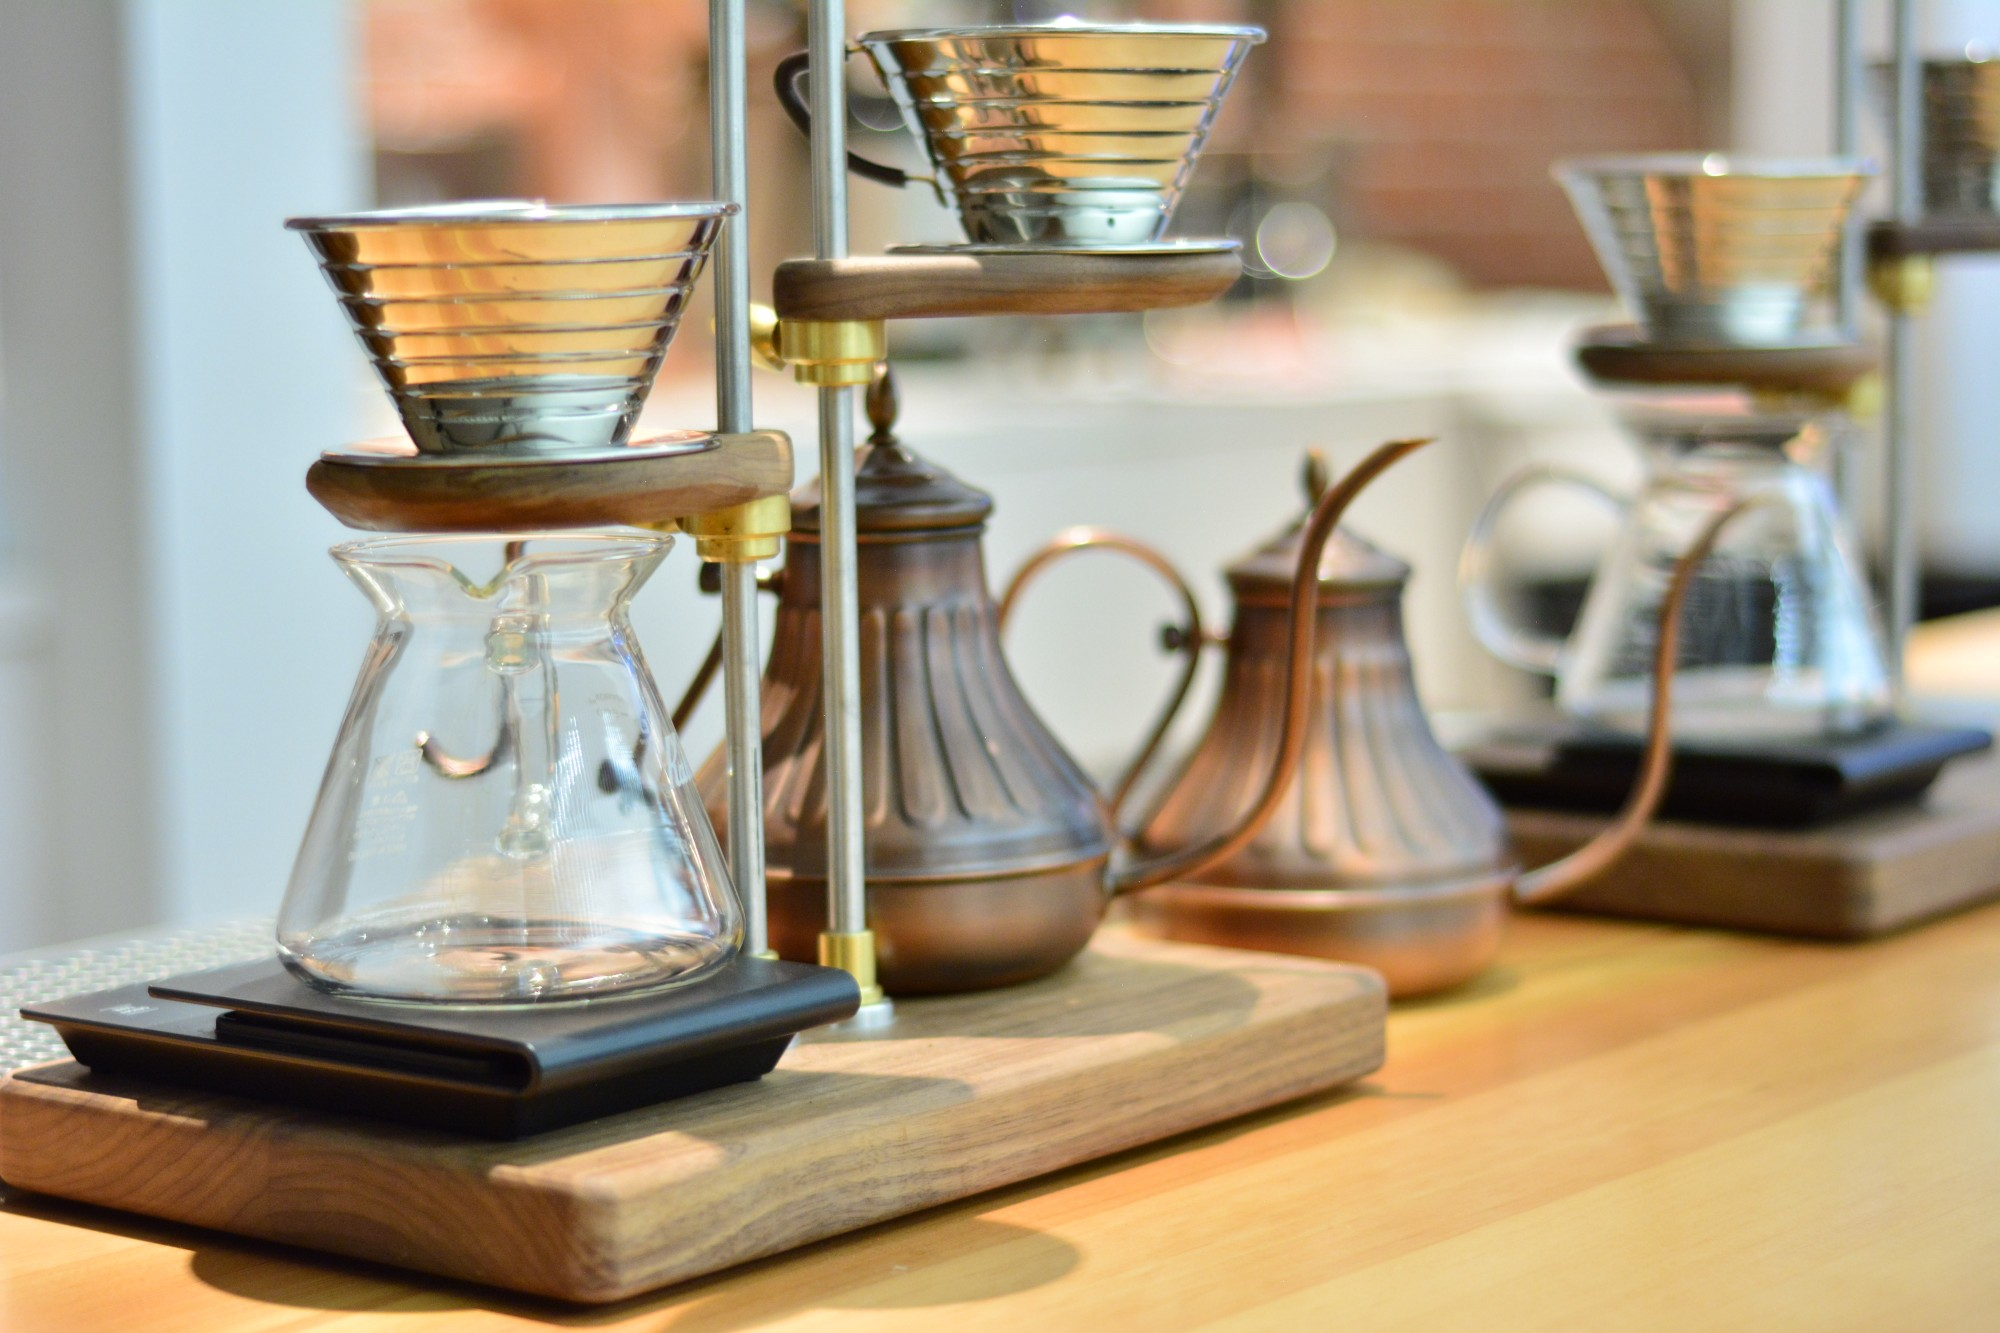 Slow brew bar